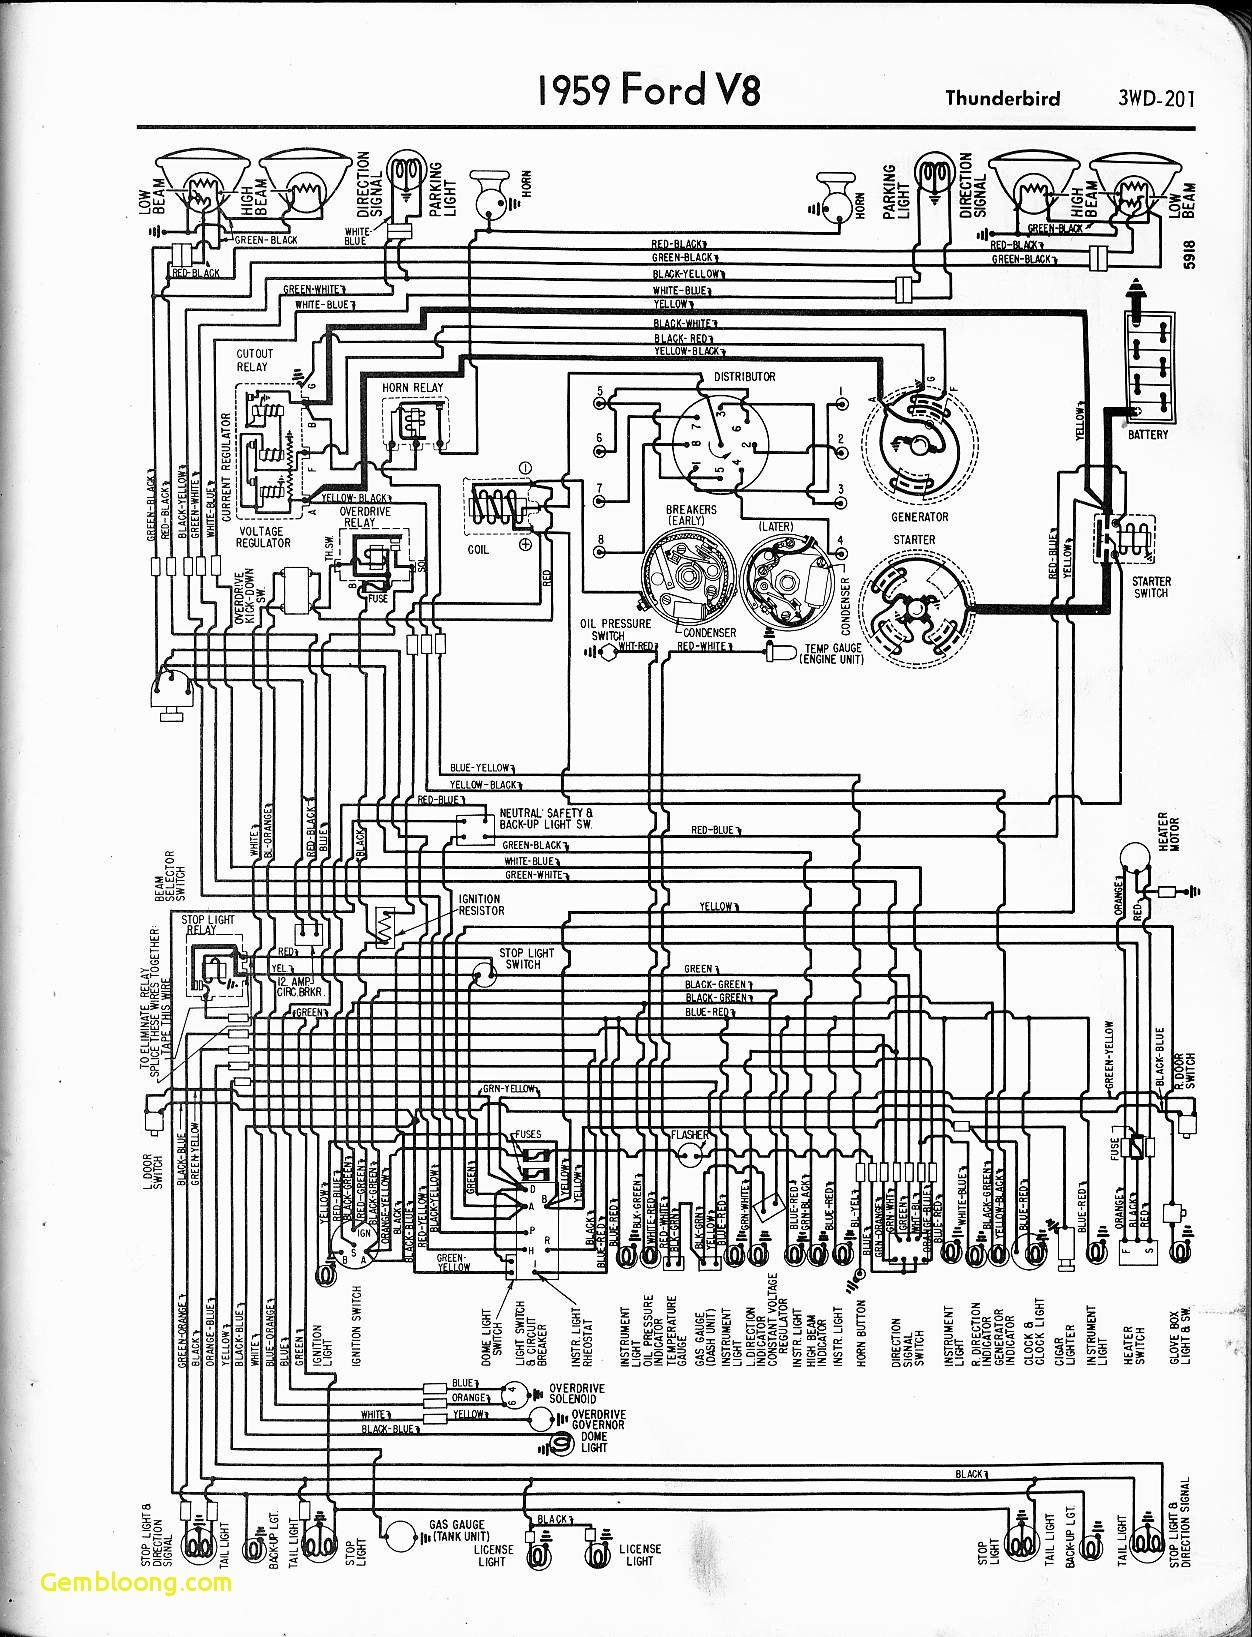 Diagram Of Car Lights Download ford Trucks Wiring Diagrams ford F150 Wiring Diagrams Best Of Diagram Of Car Lights